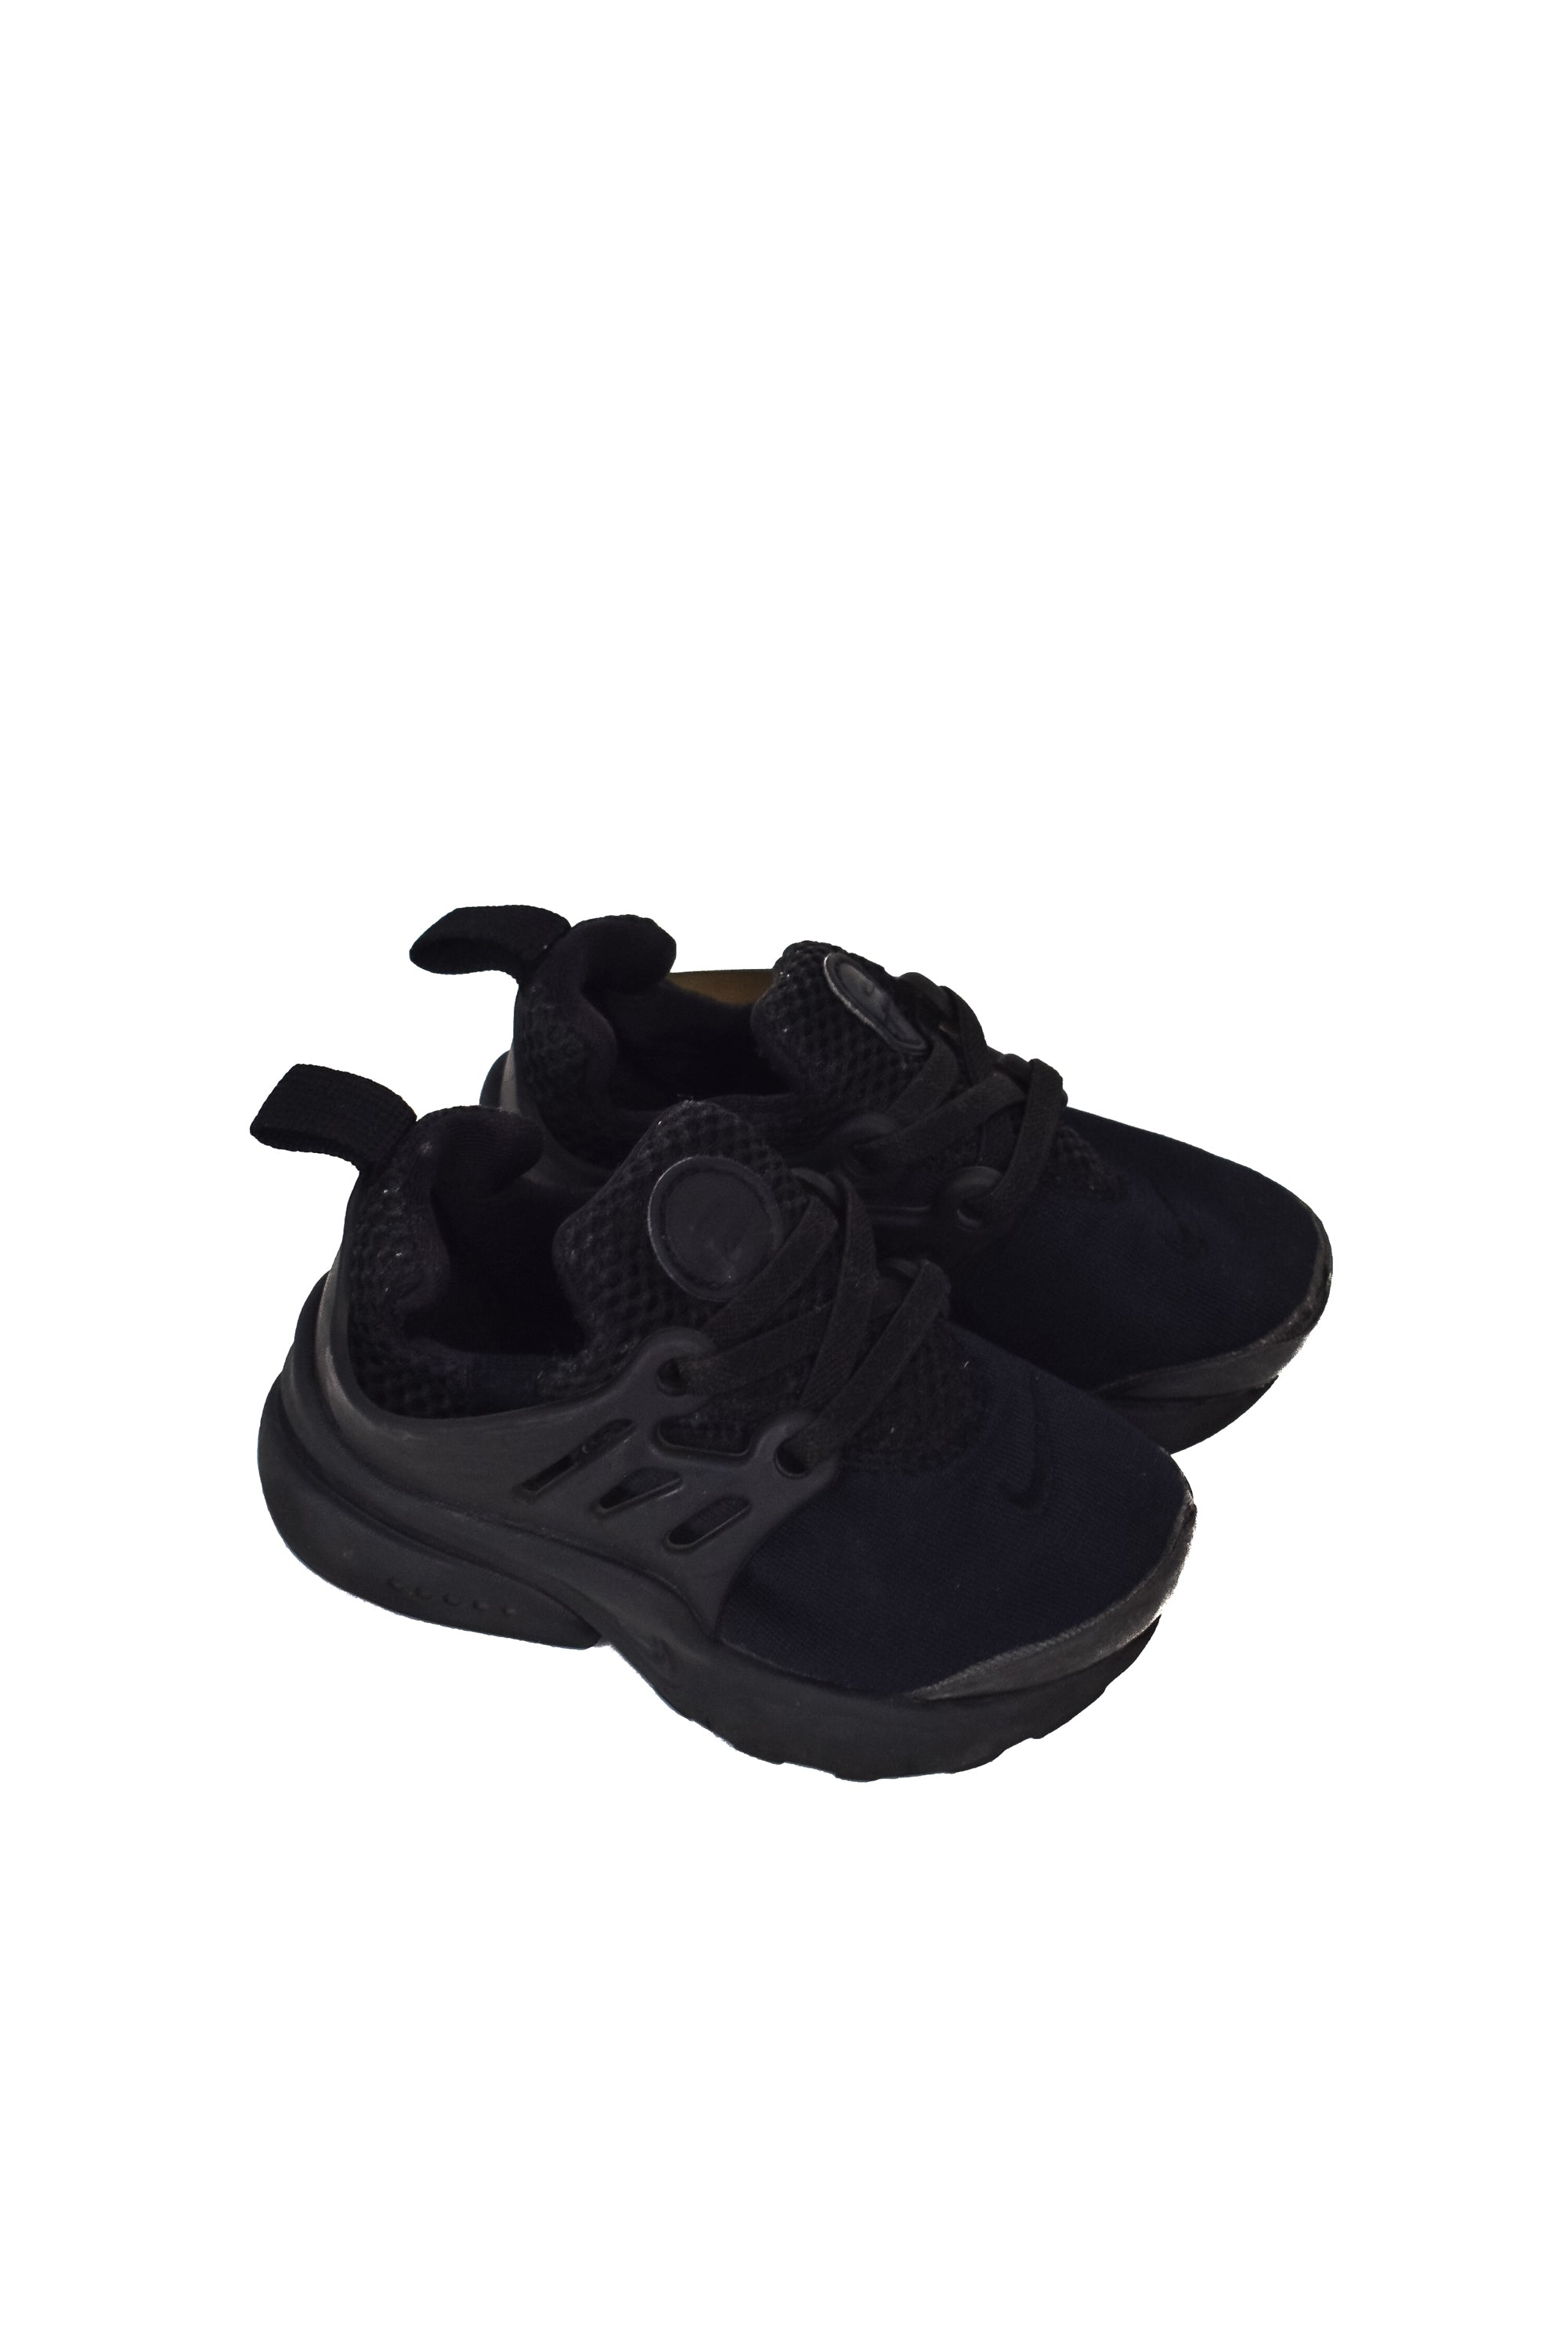 10035298 Nike Baby~Shoes 18-24M (EU 22) at Retykle